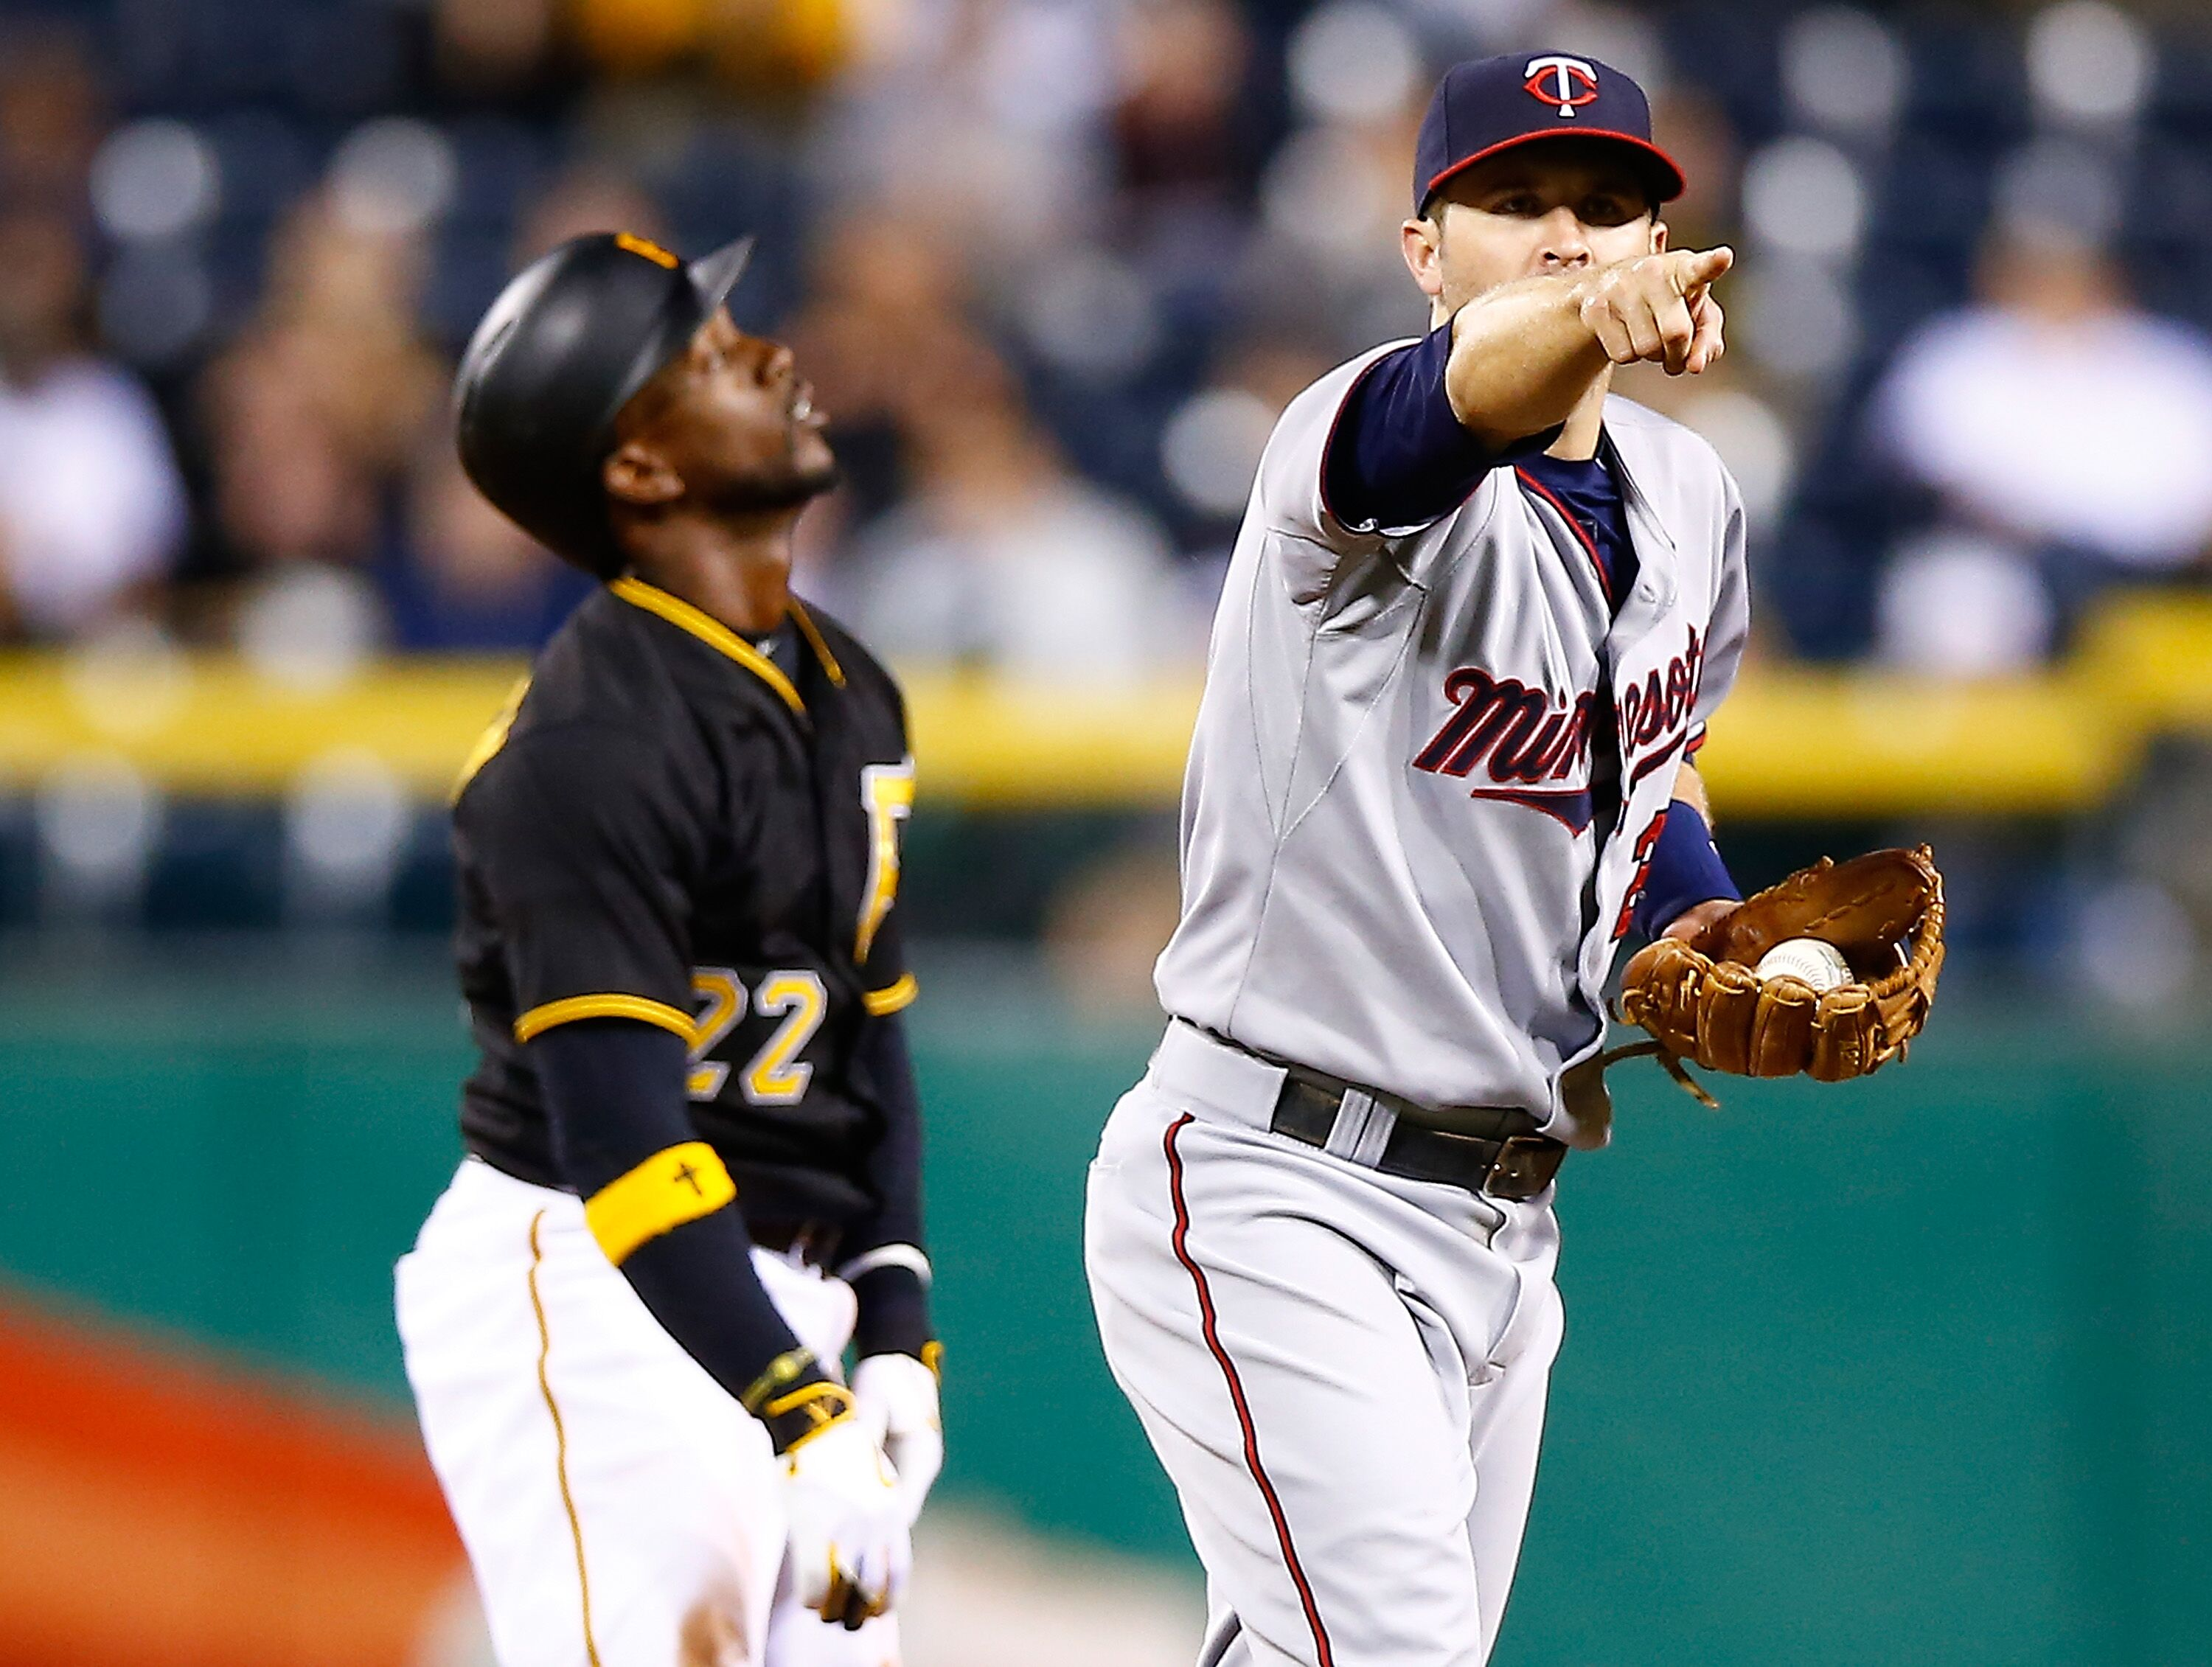 474159464-minnesota-twins-v-pittsburgh-pirates.jpg